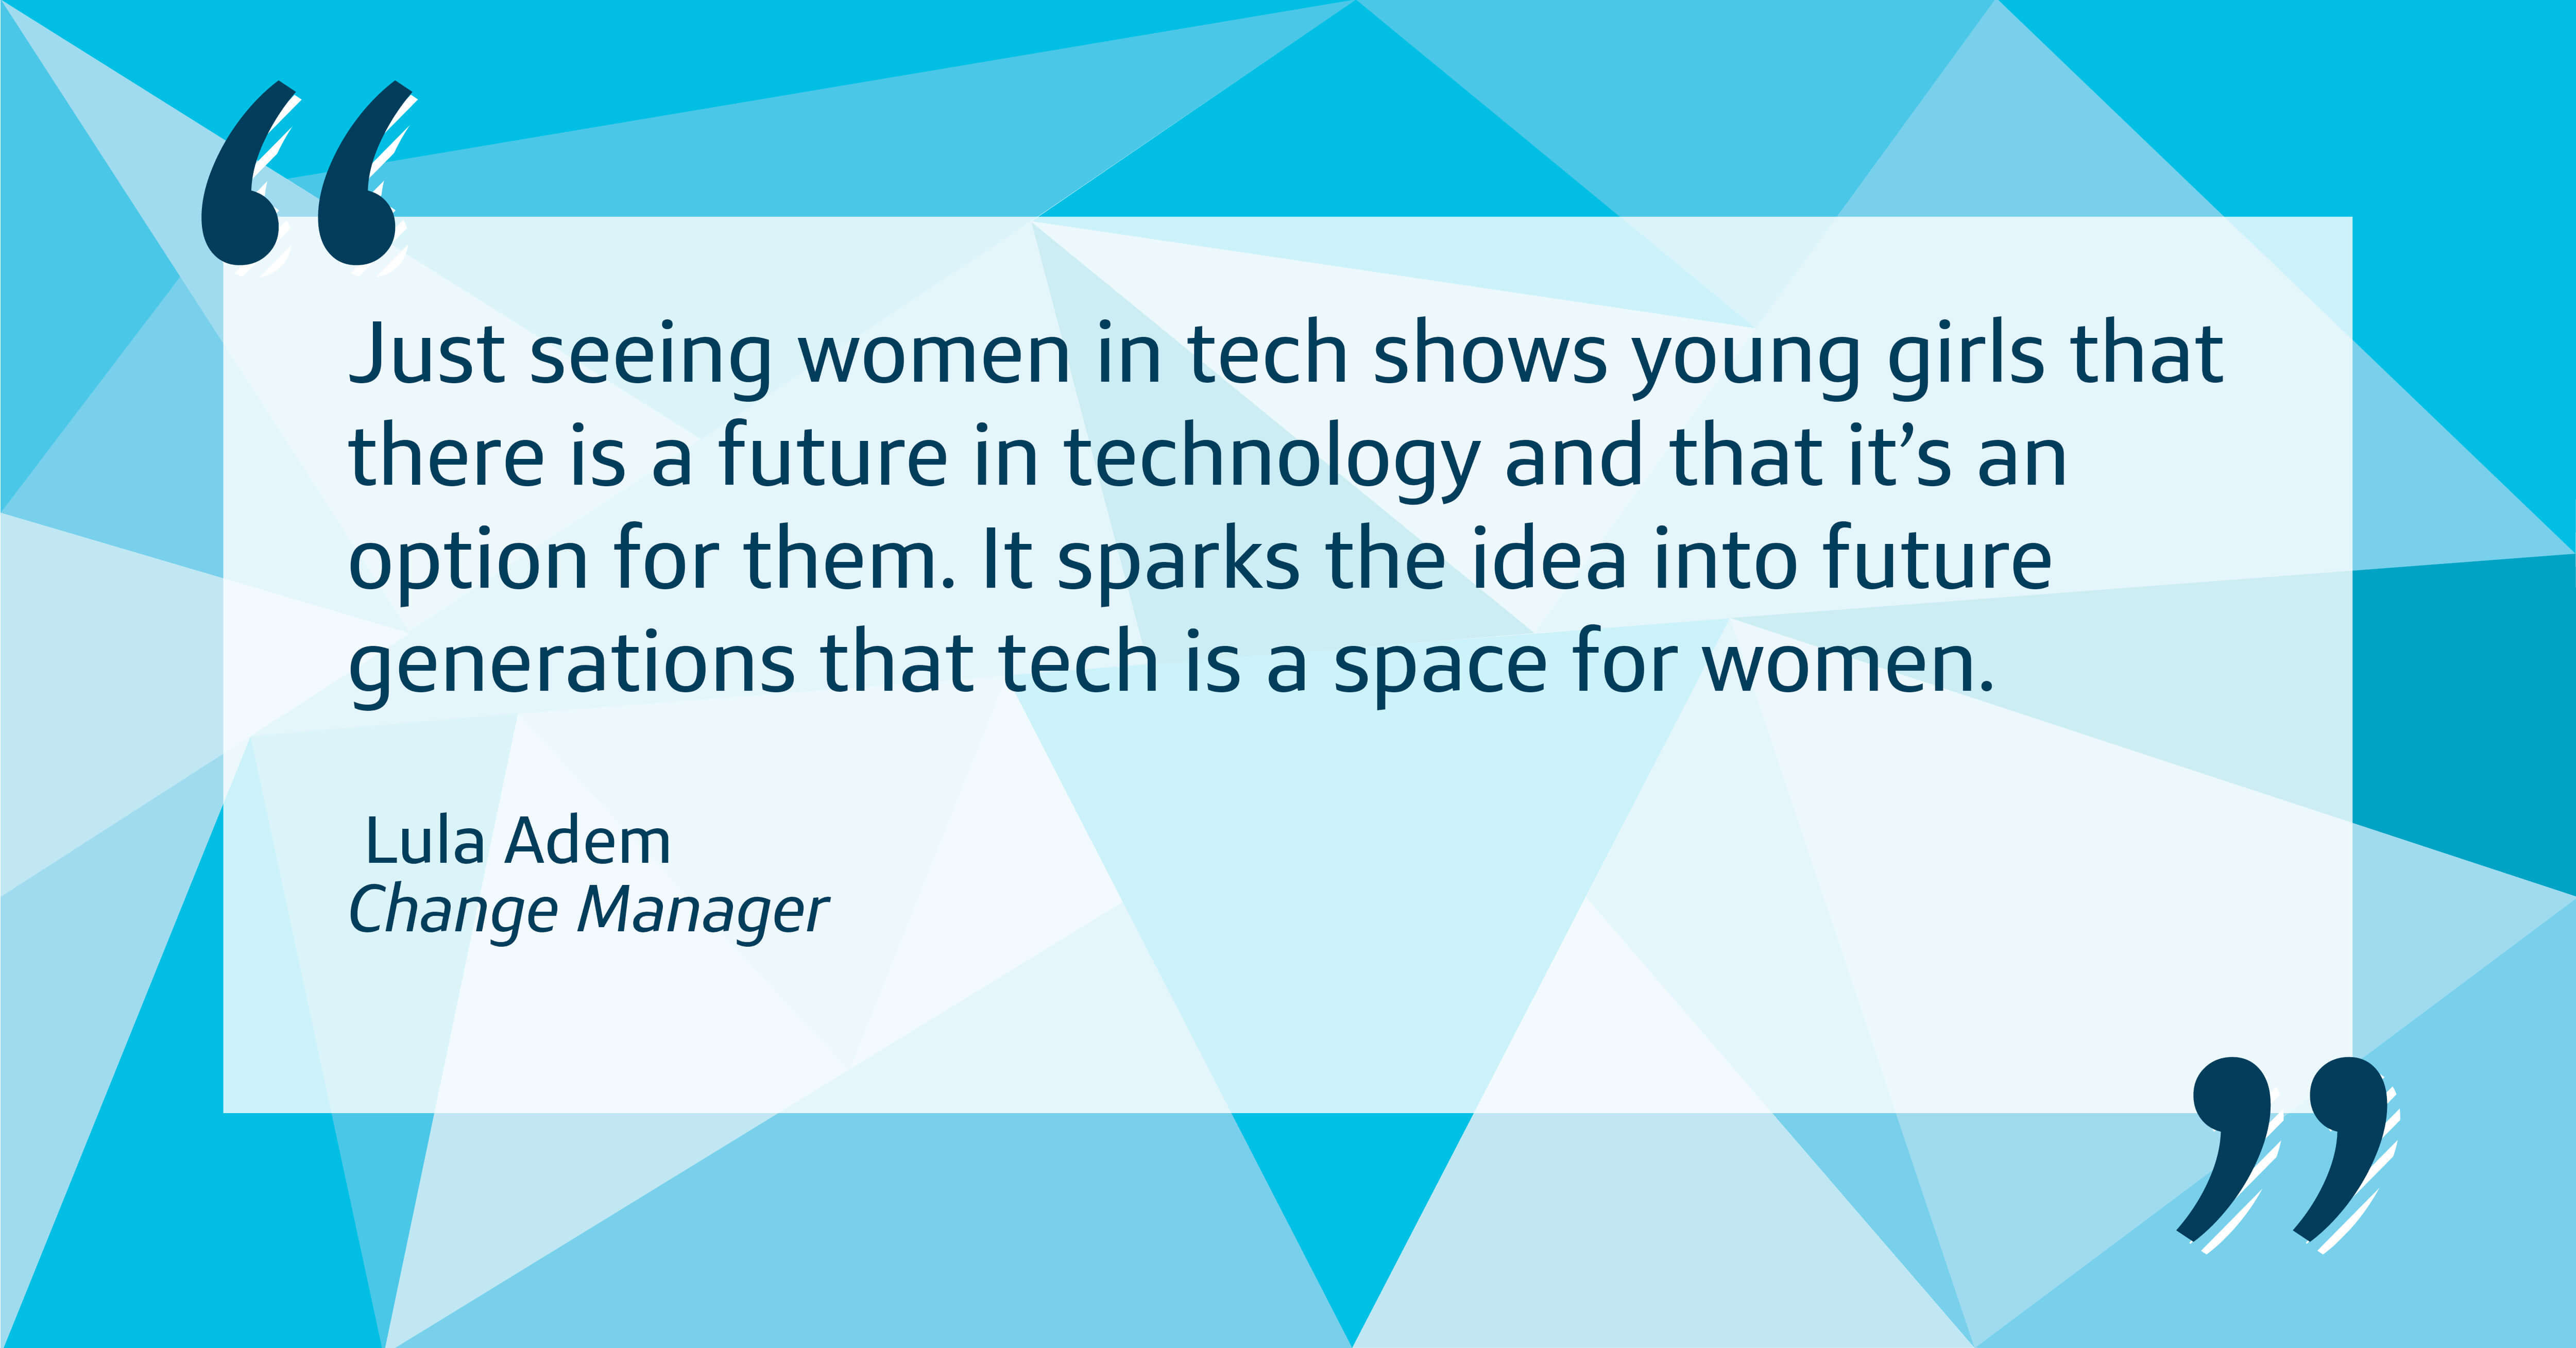 Just seeing women in tech shows young girls that there is a future in technology and that it's an option for them. It sparks the idea into future generations that tech is a space for women.